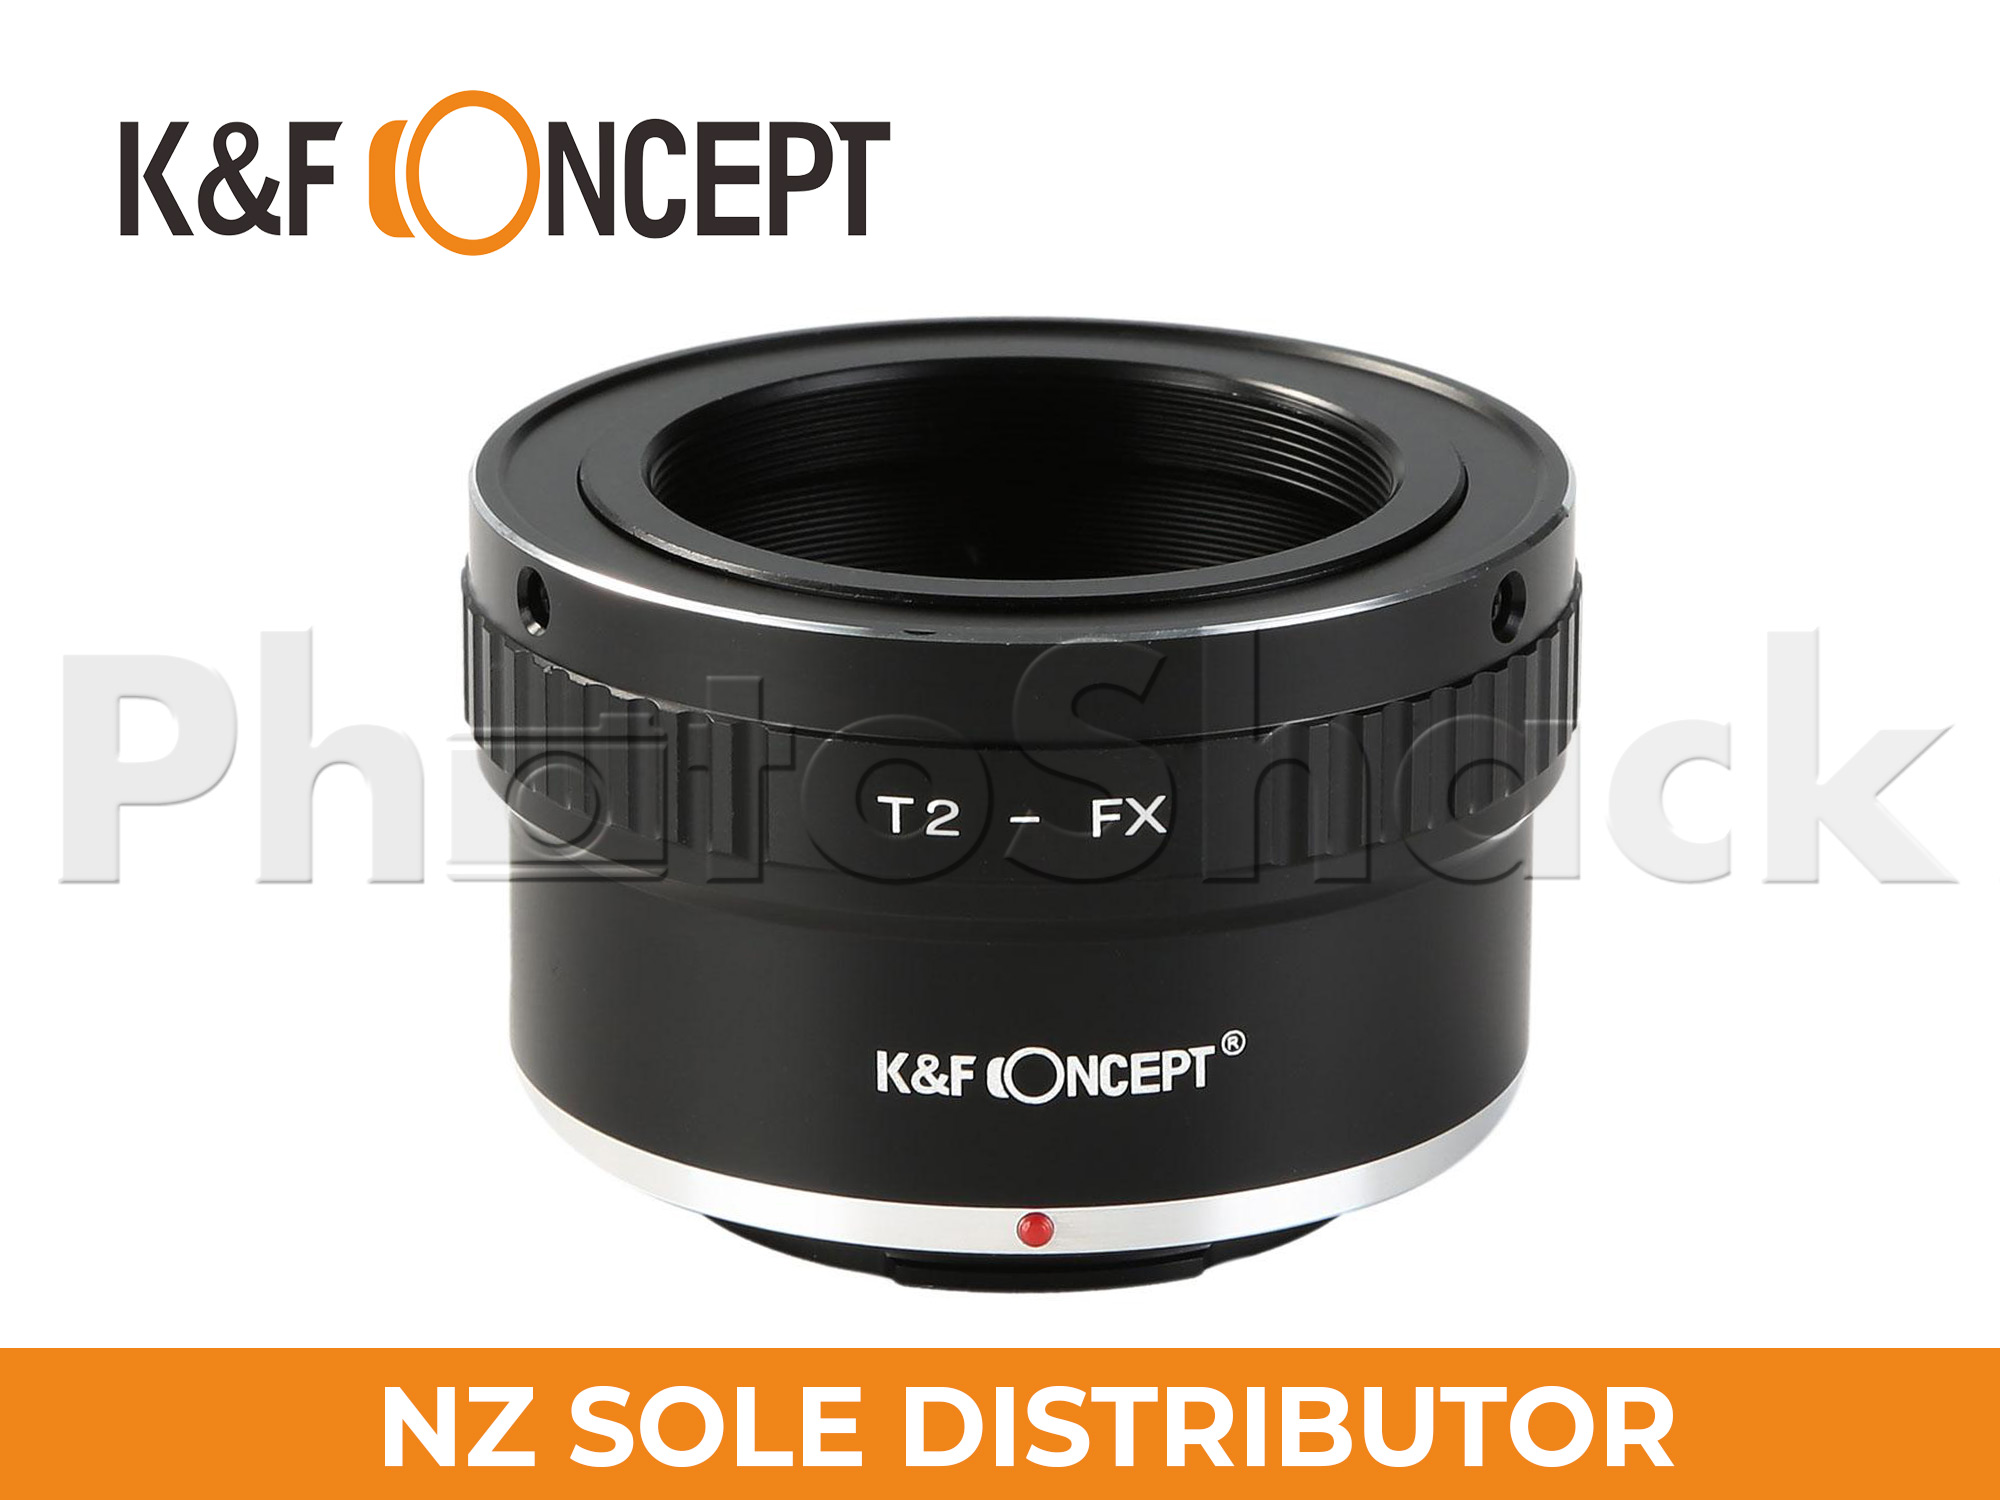 K&F Concept T2 Telescope Mount Lenses to Fuji X Mount Camera Adapter Converter